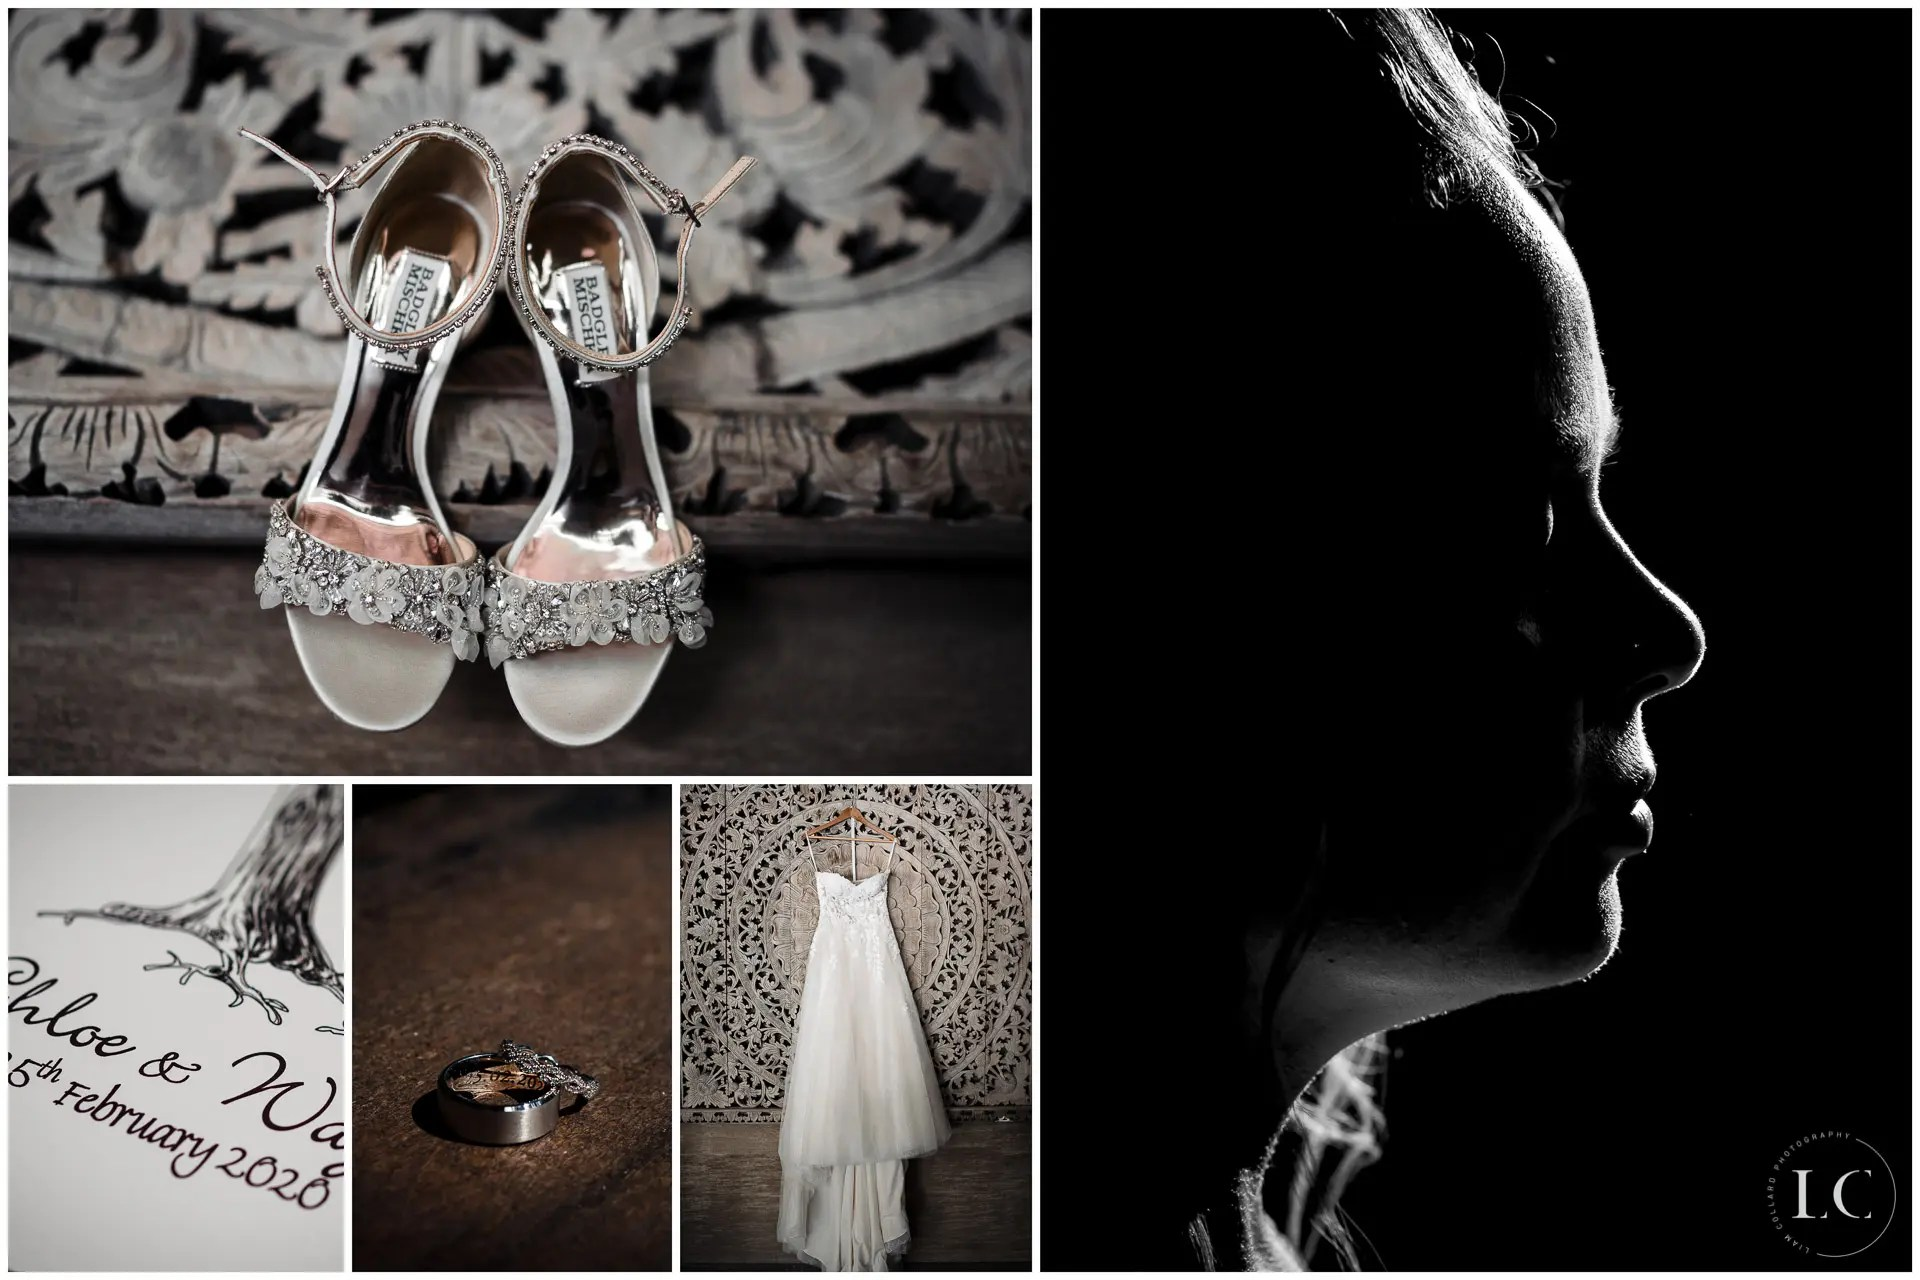 Collage of wedding day